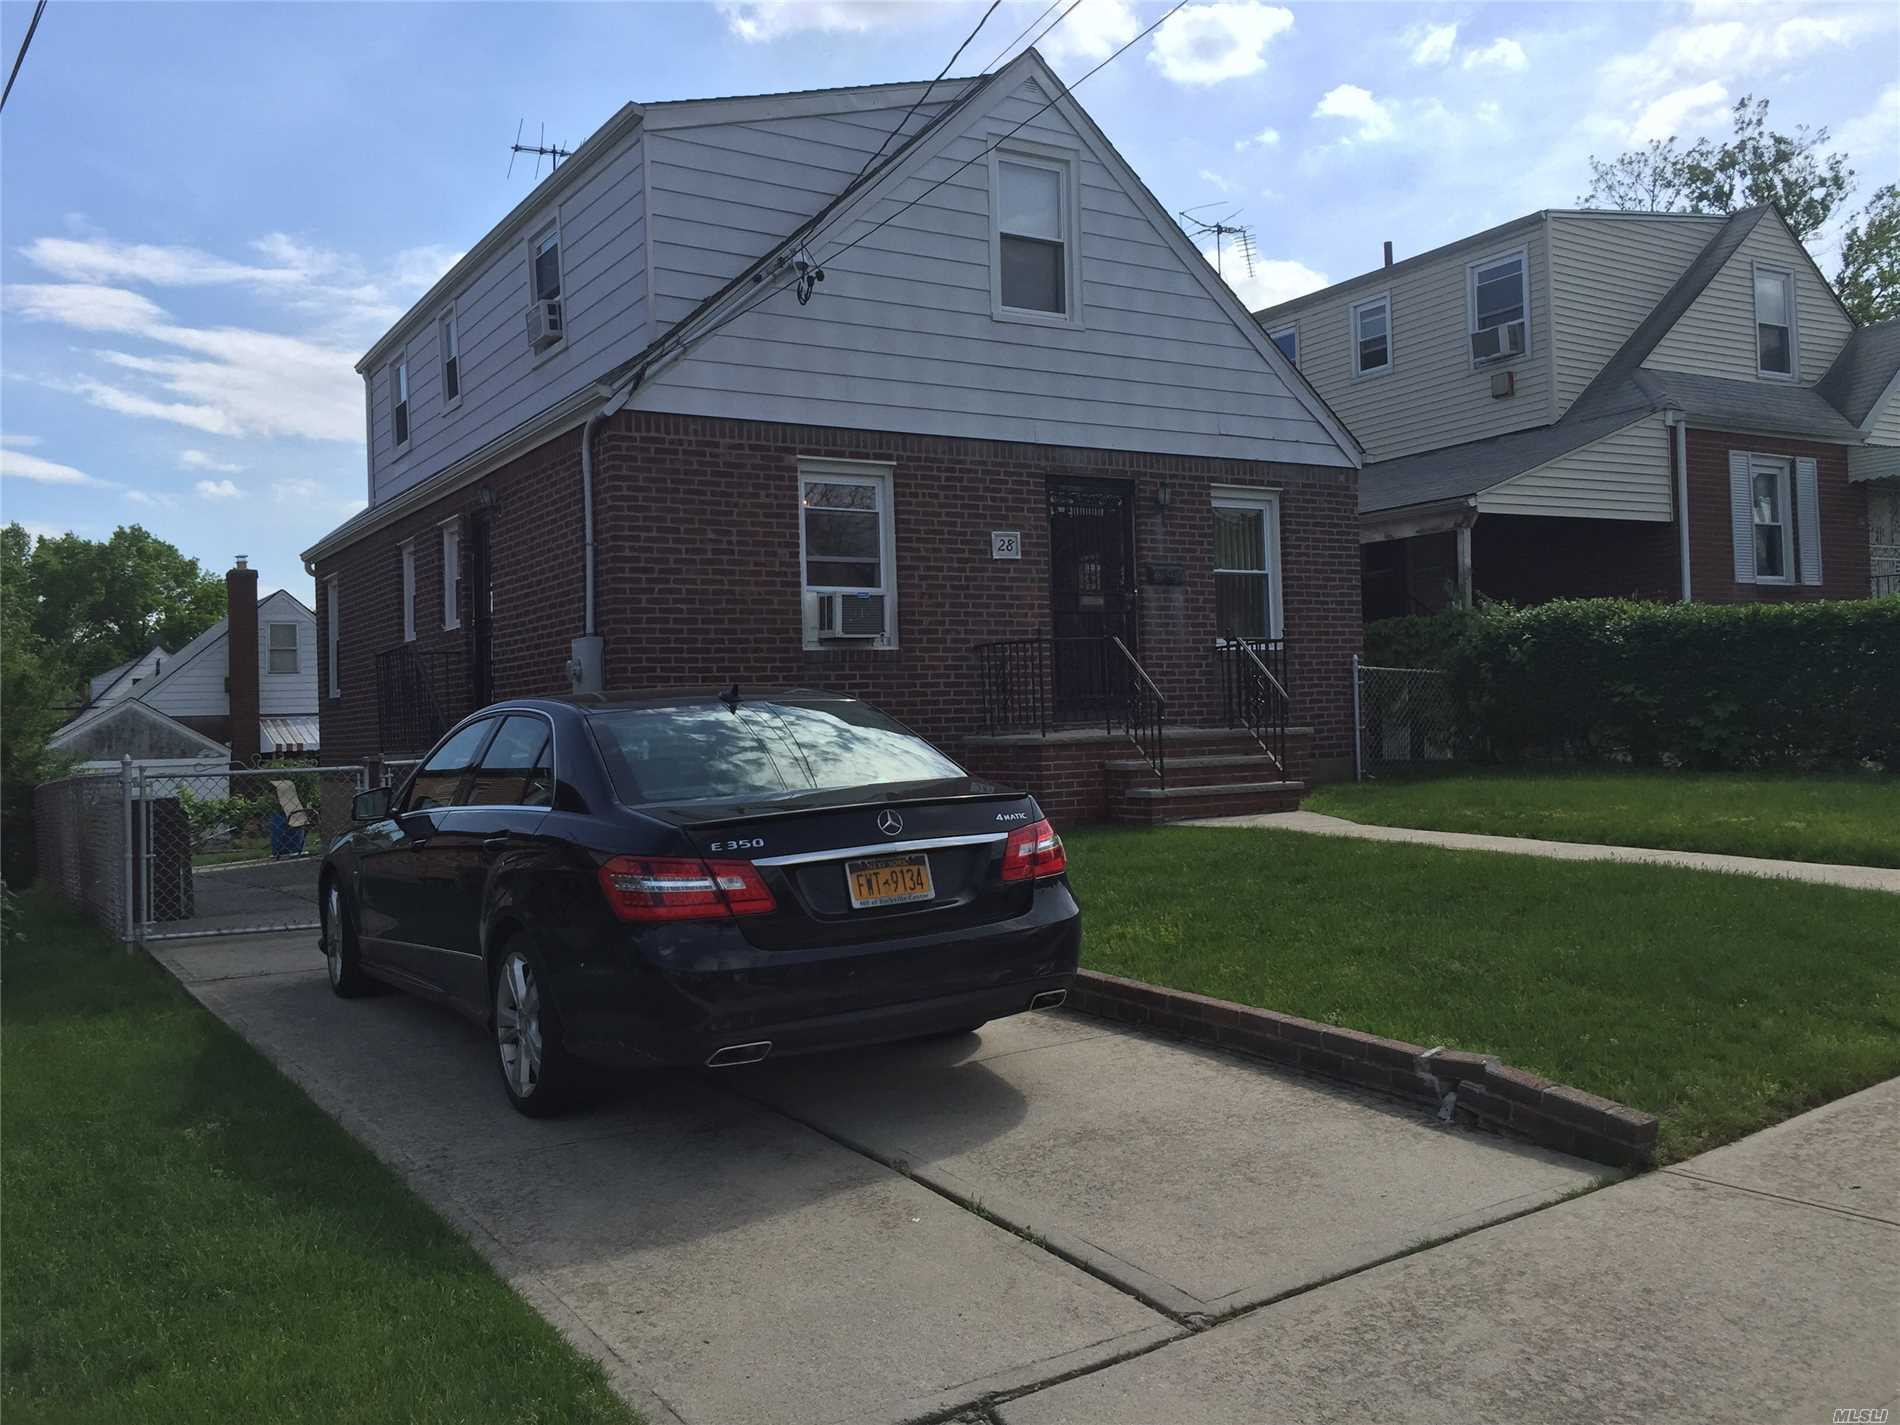 Brick Well Maintained Cape Cod On A Quiet Street Now Available, The First Floor Includes The Kitchen, Living Room, Dining Room, Master Bedroom, Full Bath And A Spare Bedroom Or Office.The Second Floor Includes Two Bedrooms And Full Bath.The Basement Is Partially Finished And Provides Plenty Of Storage..New Gas Heating System.5 Window Air Conditioners .Convenient To Highways And Schools.